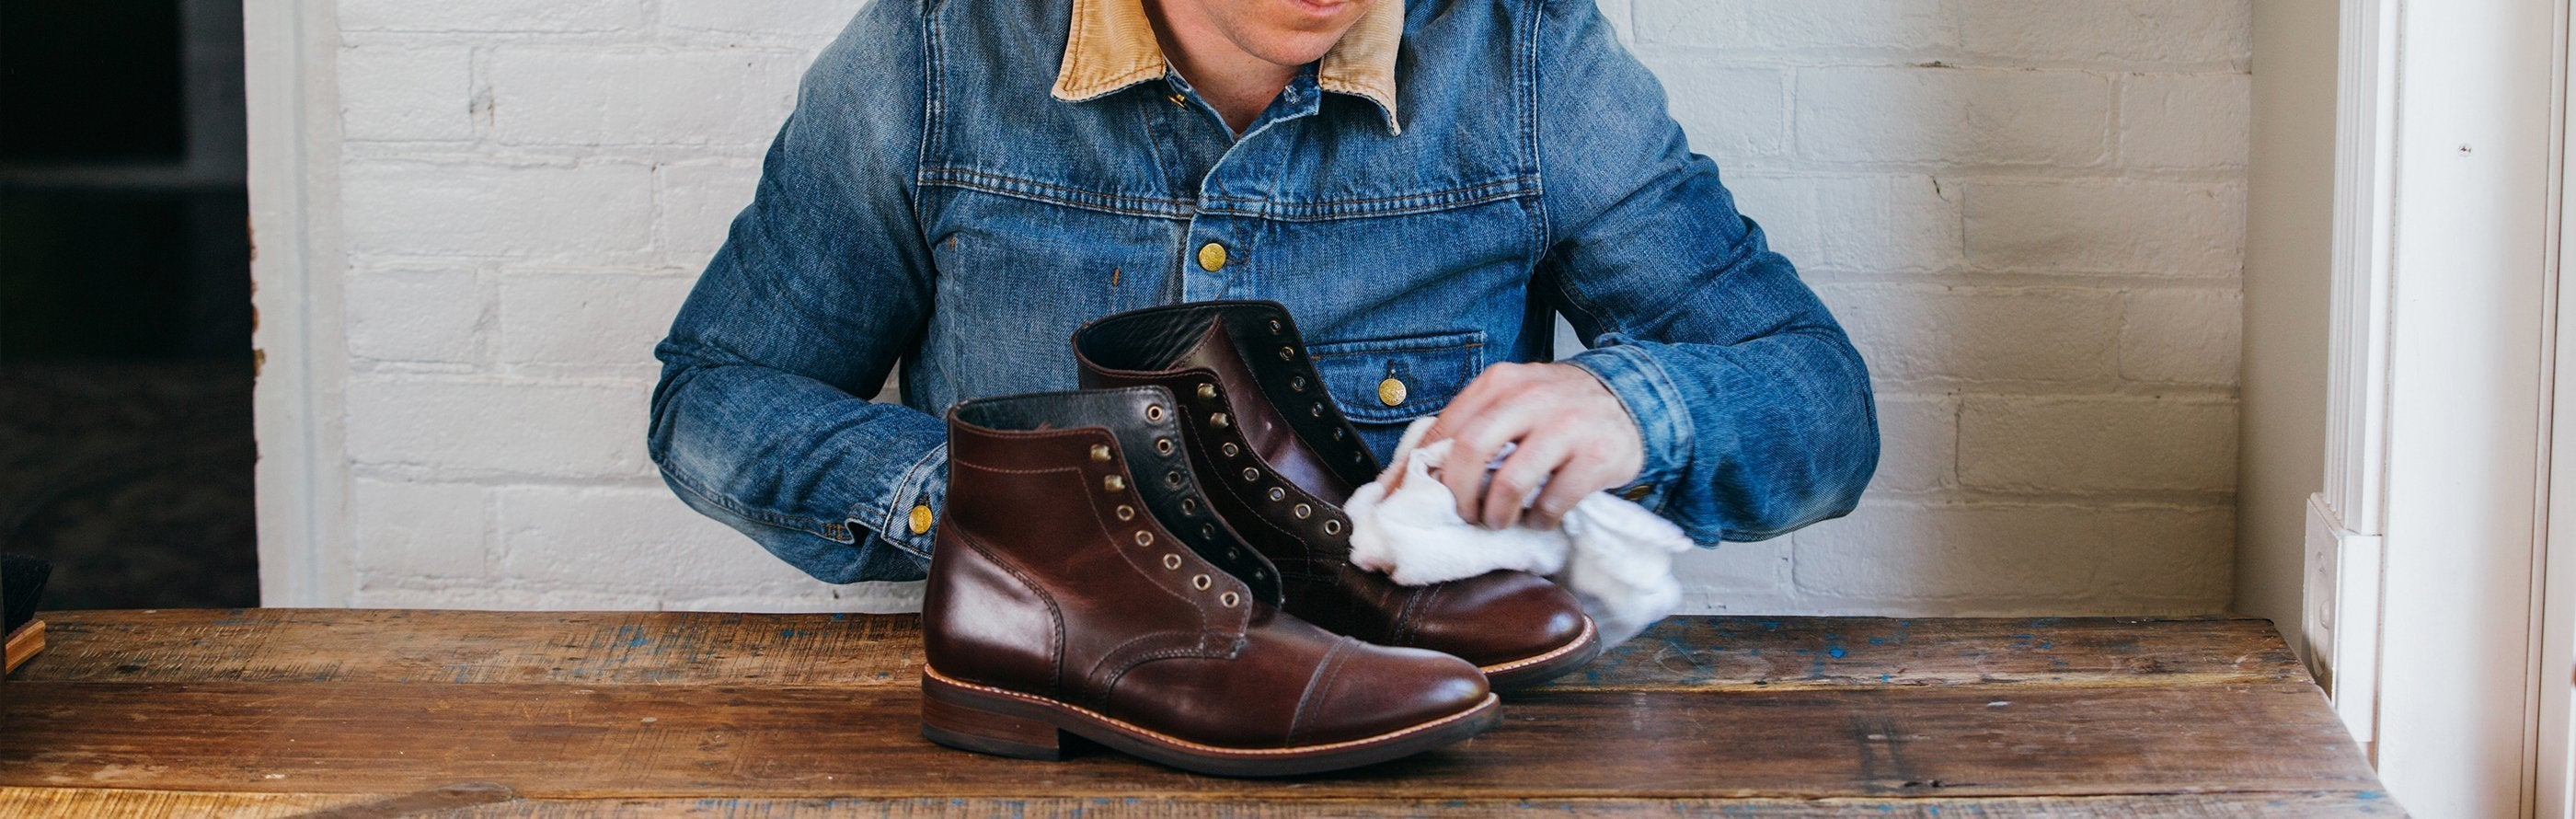 6a27c61b1f6 Caring for Your Leather Boots | Thursday Boot Company